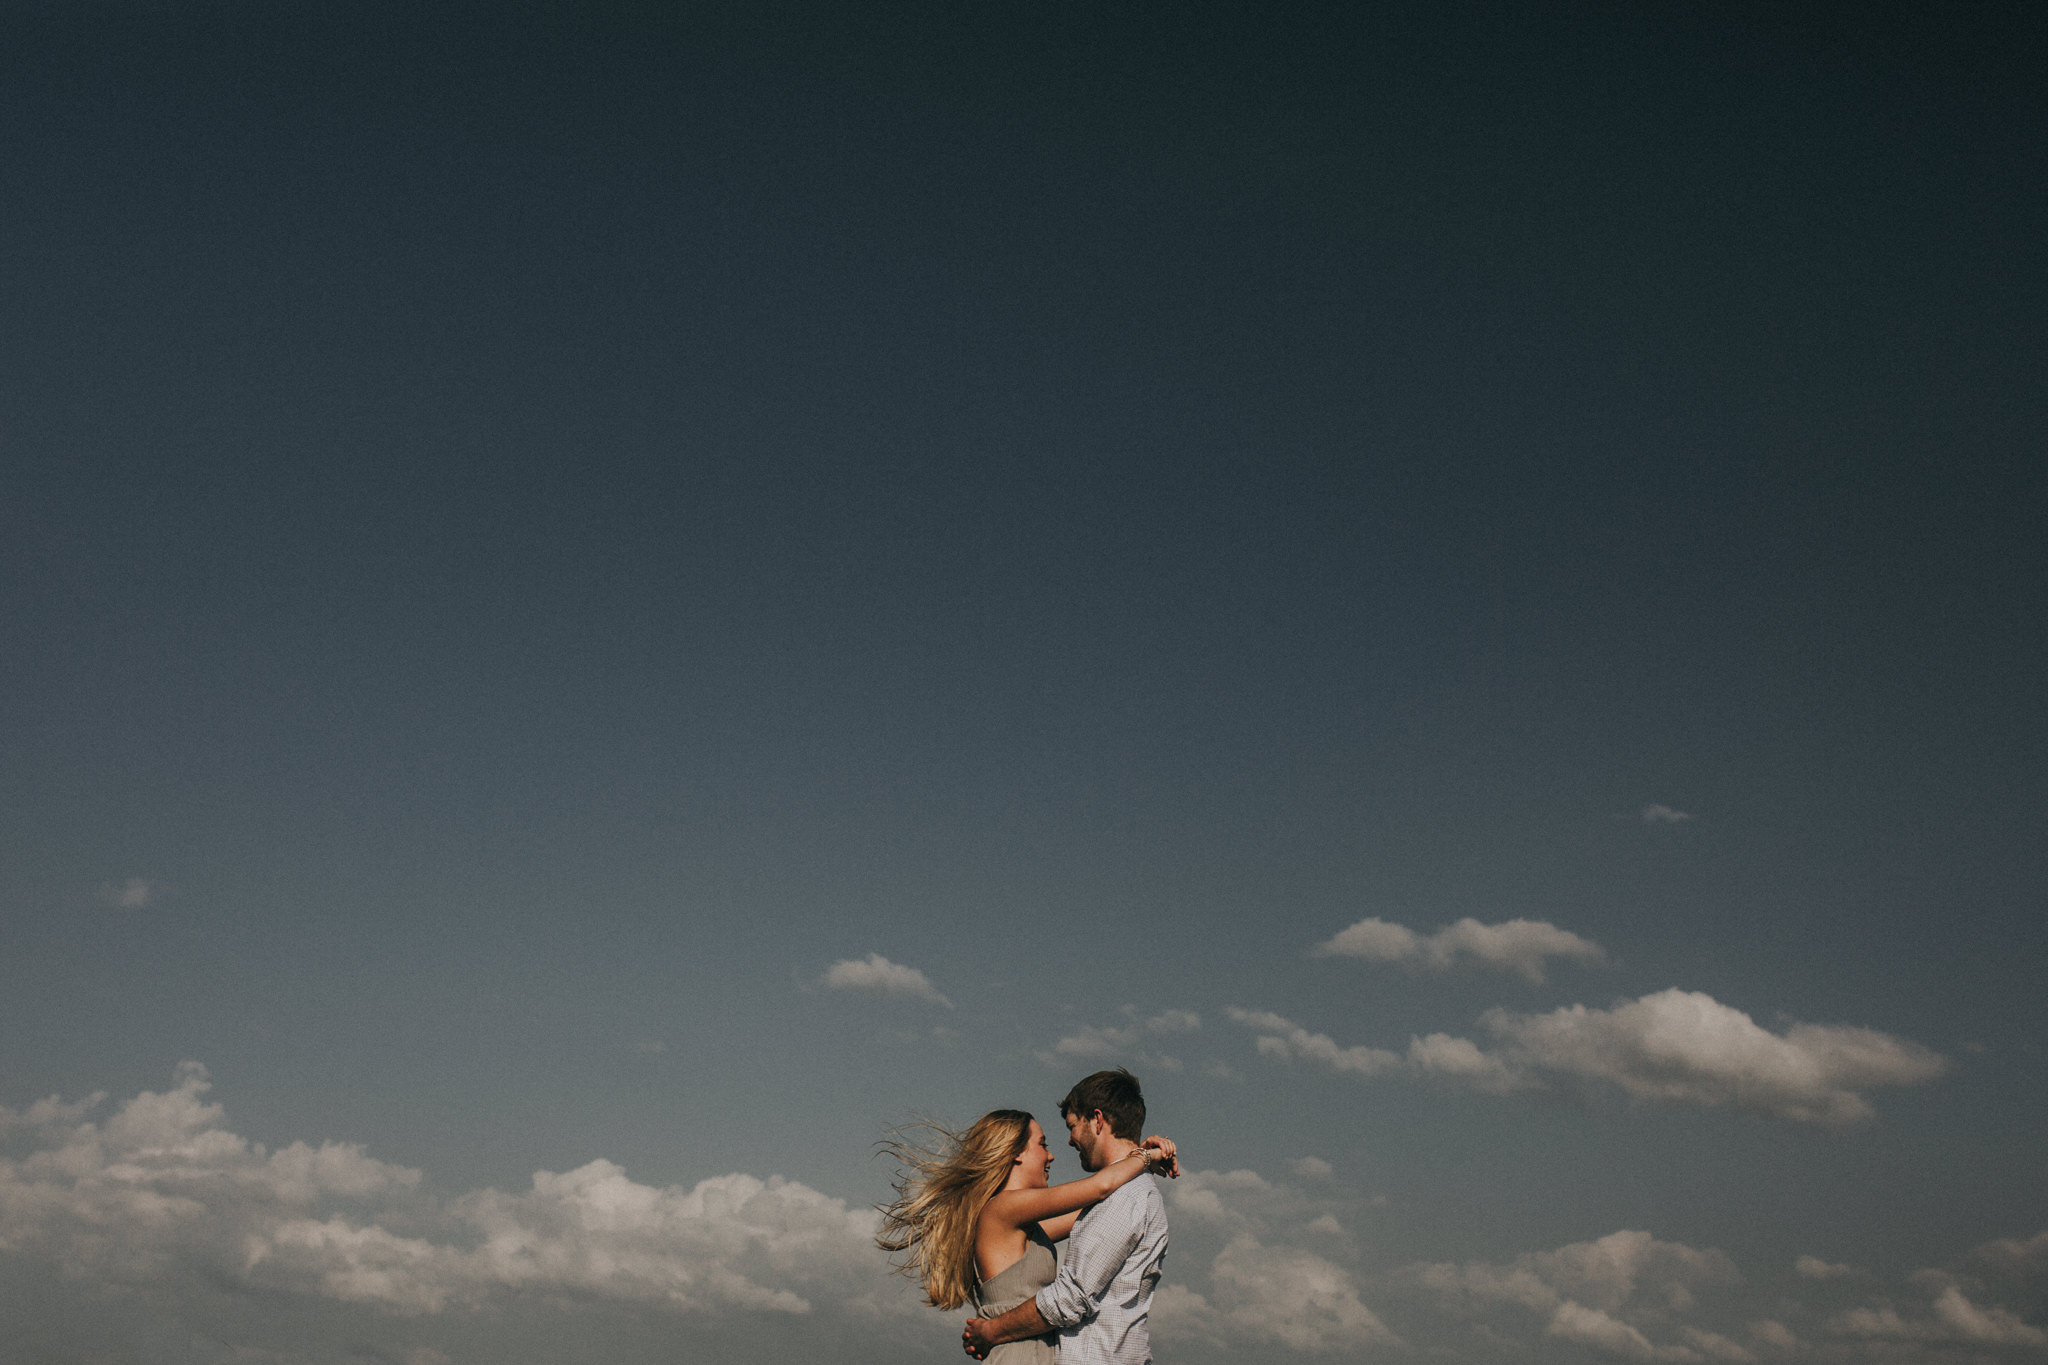 cassie-cook-photography-kelsey-spencer-engagement-photos-44.jpg